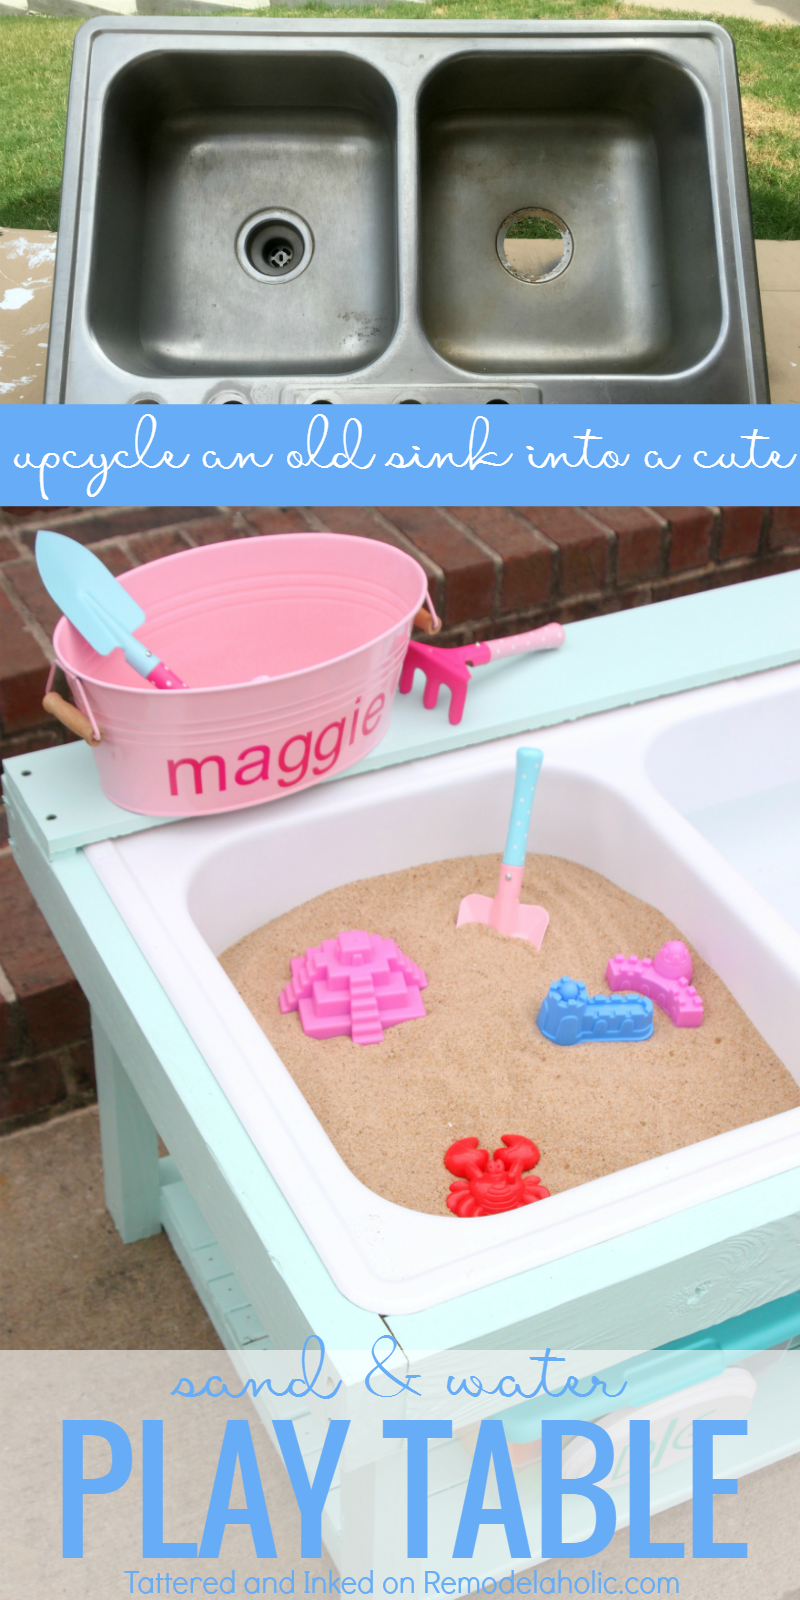 Make A Kids Sand And Water Table For Outdoor Sensory Play From An Old Sink,